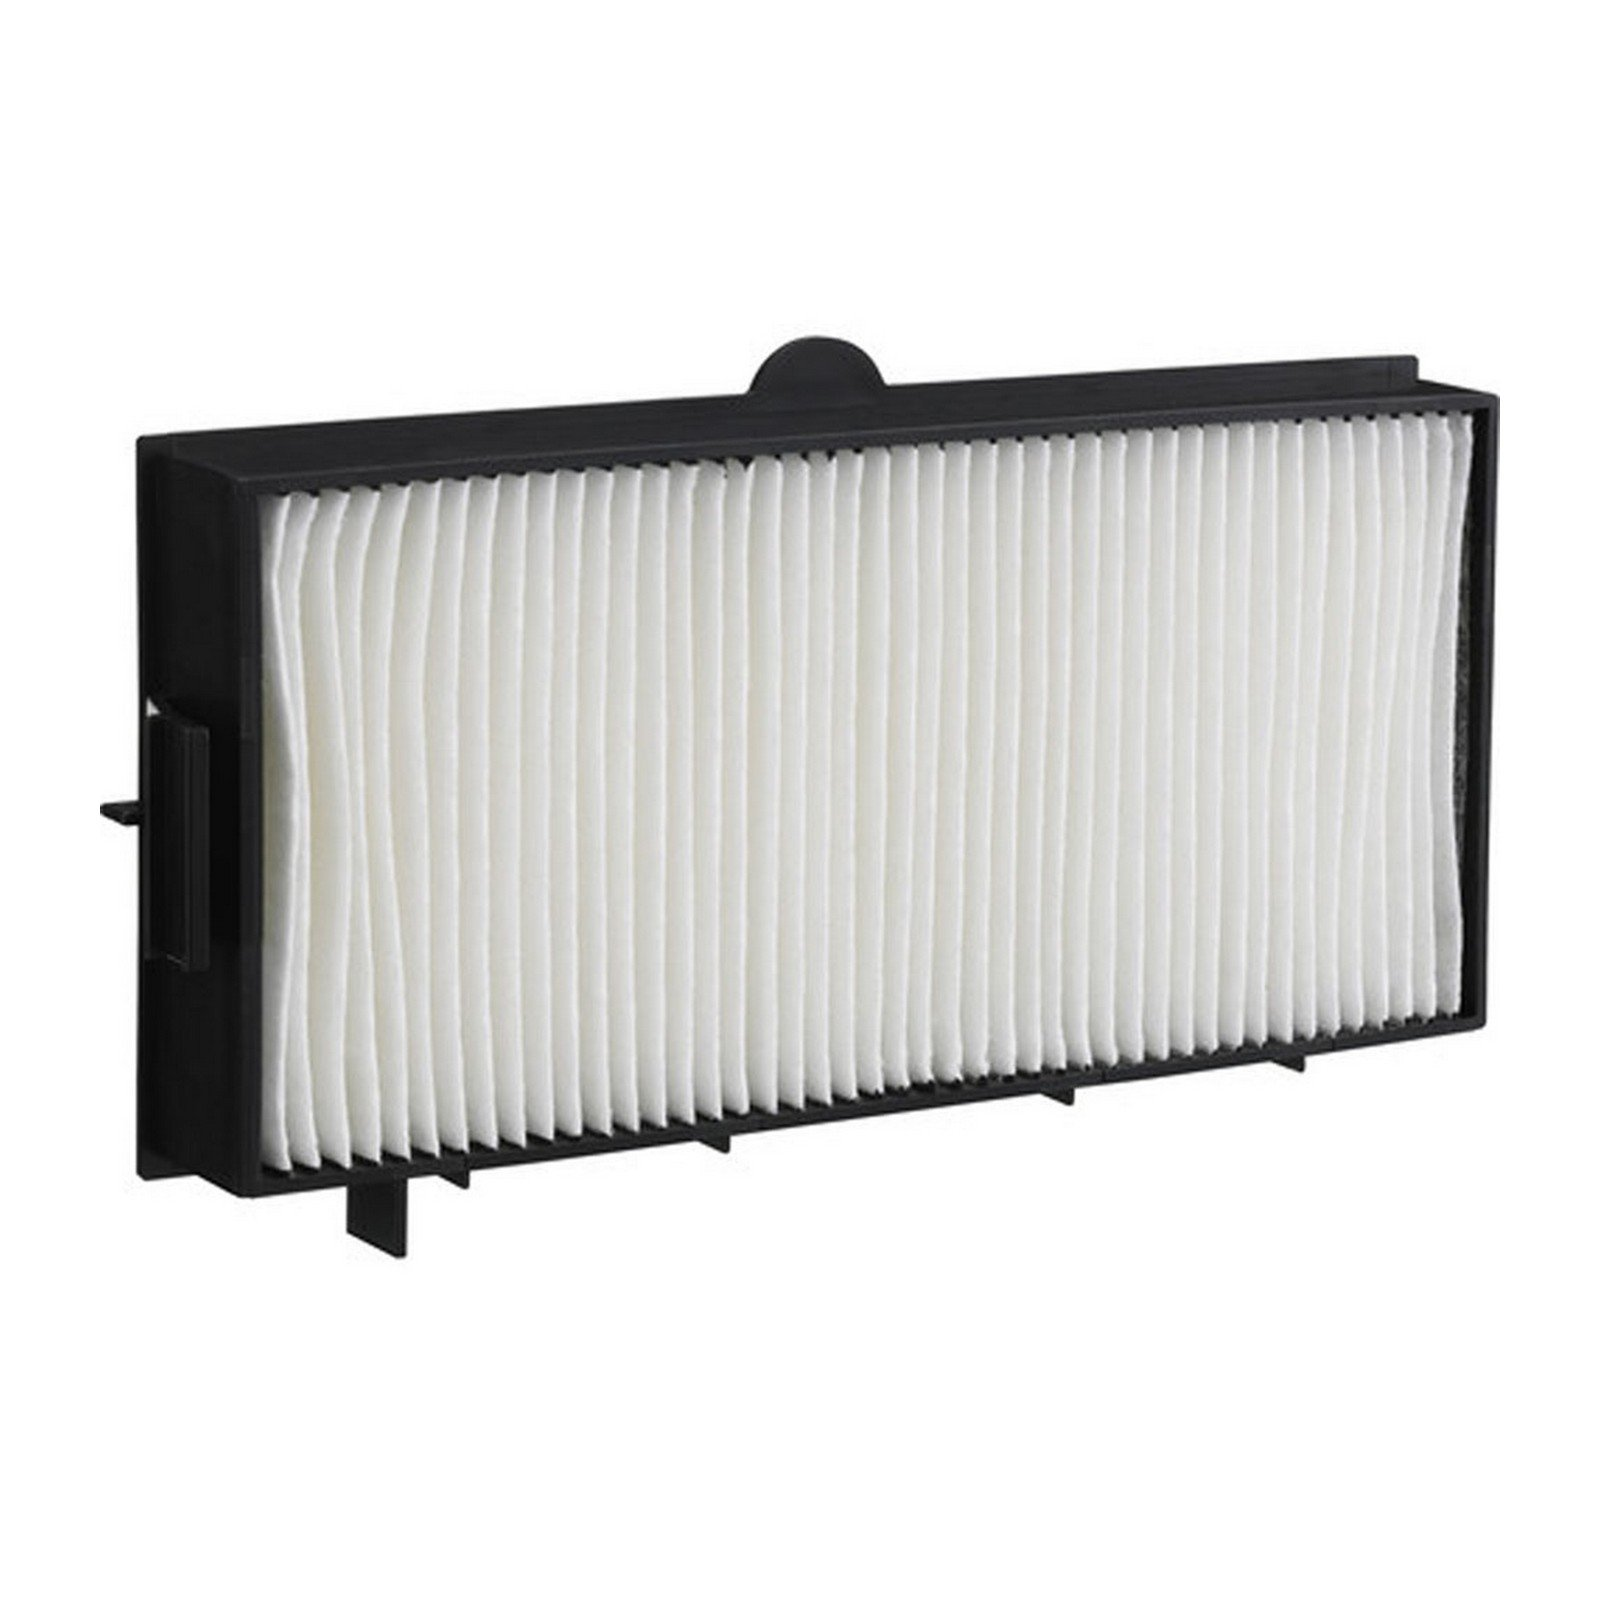 Panasonic ET-RFE200 | Projector Replacement Filter for PTEZ570 by Panasonic